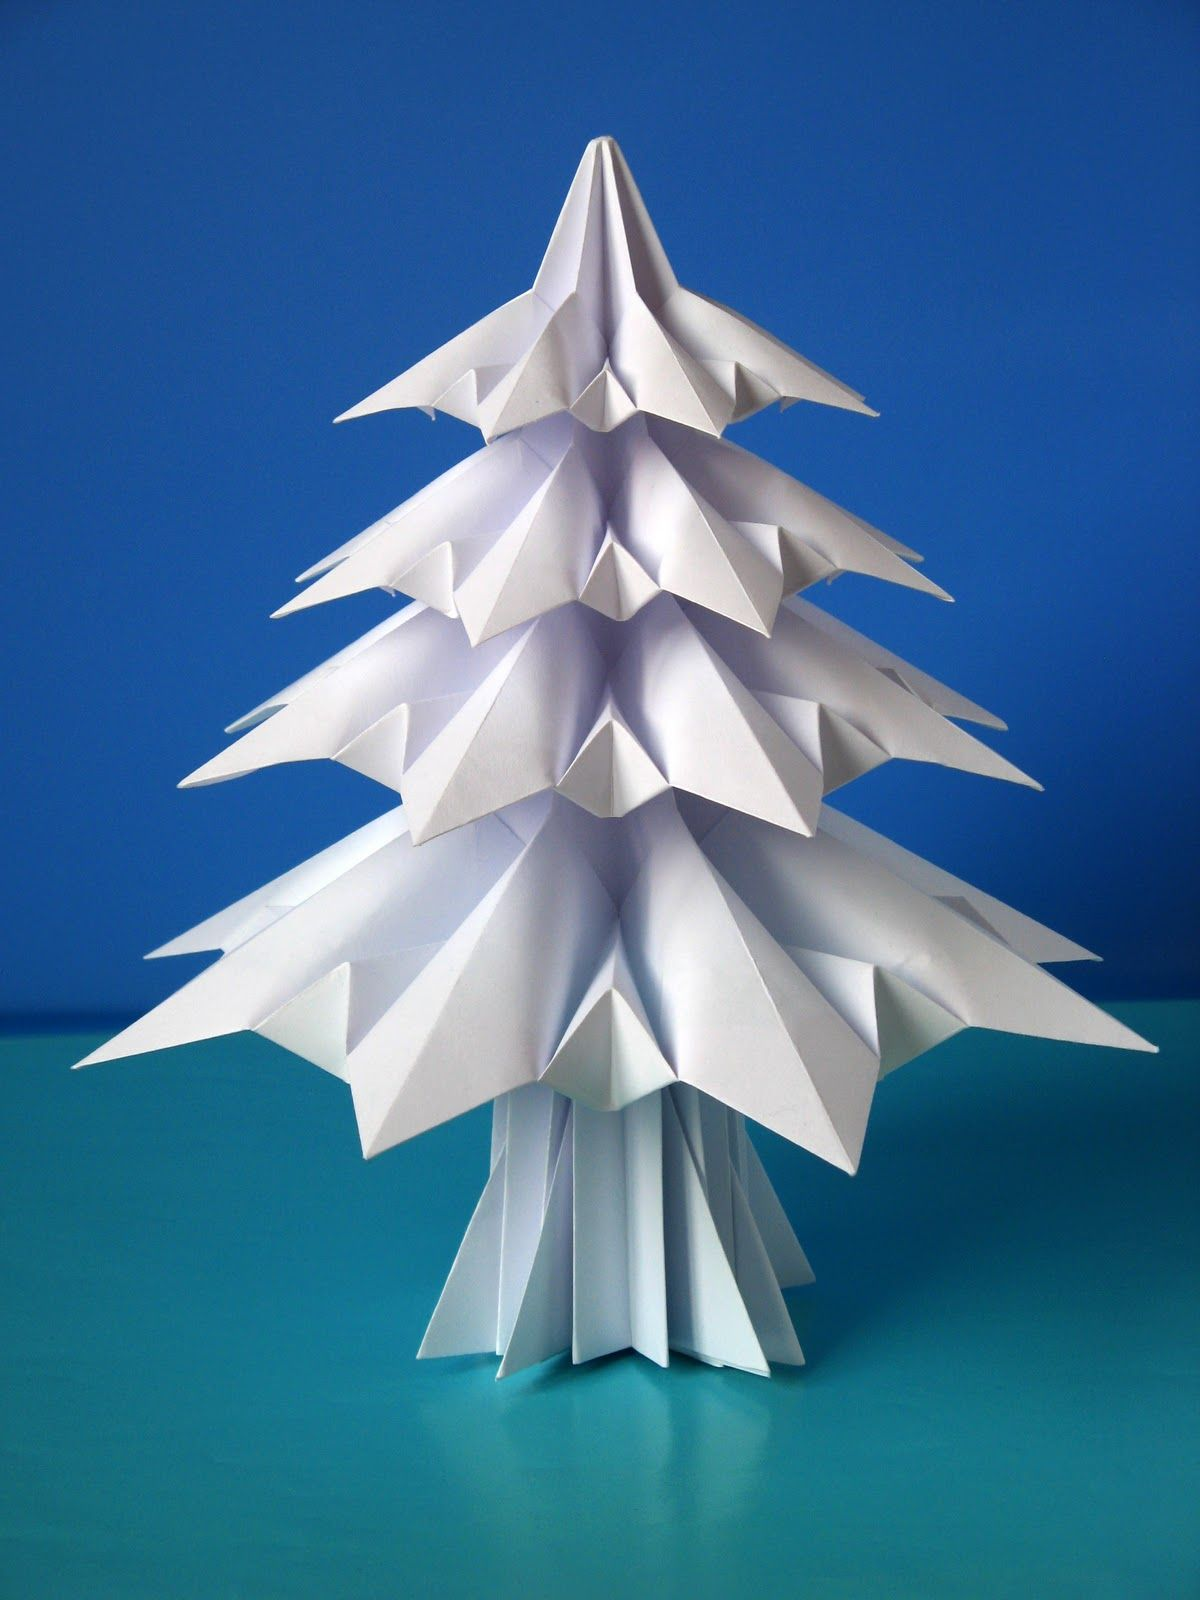 Abete 3 - Fir tree 3 by Francesco Guarnieri